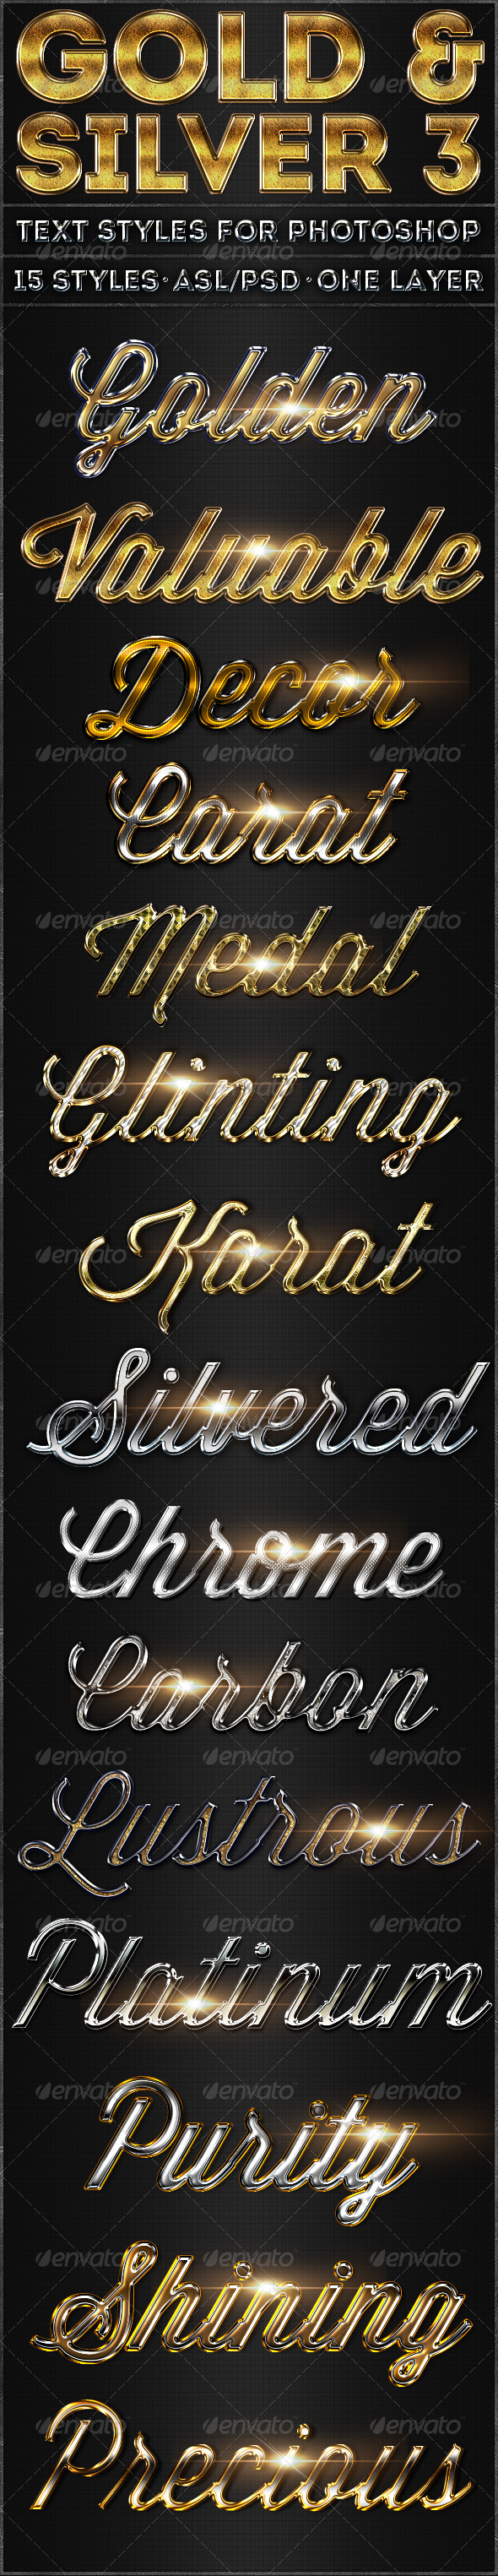 GraphicRiver Gold & Silver 3 Text Styles 5358301